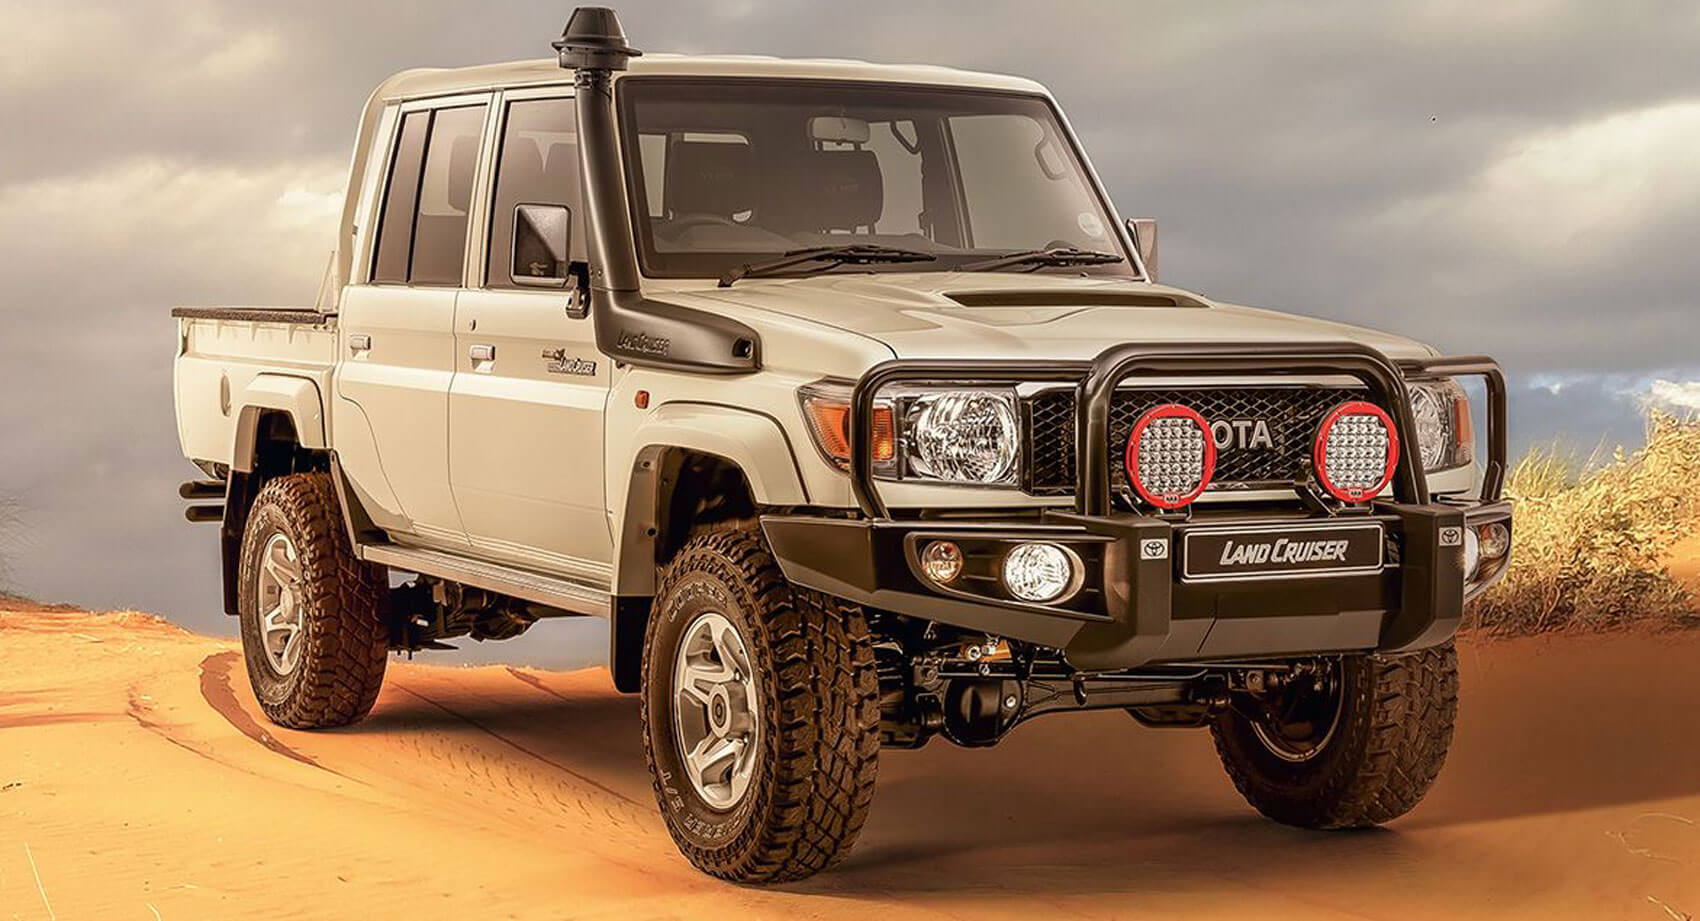 Toyota Land Cruiser 70 >> New Toyota Land Cruiser Namib Is Made For Africa's Tough ...